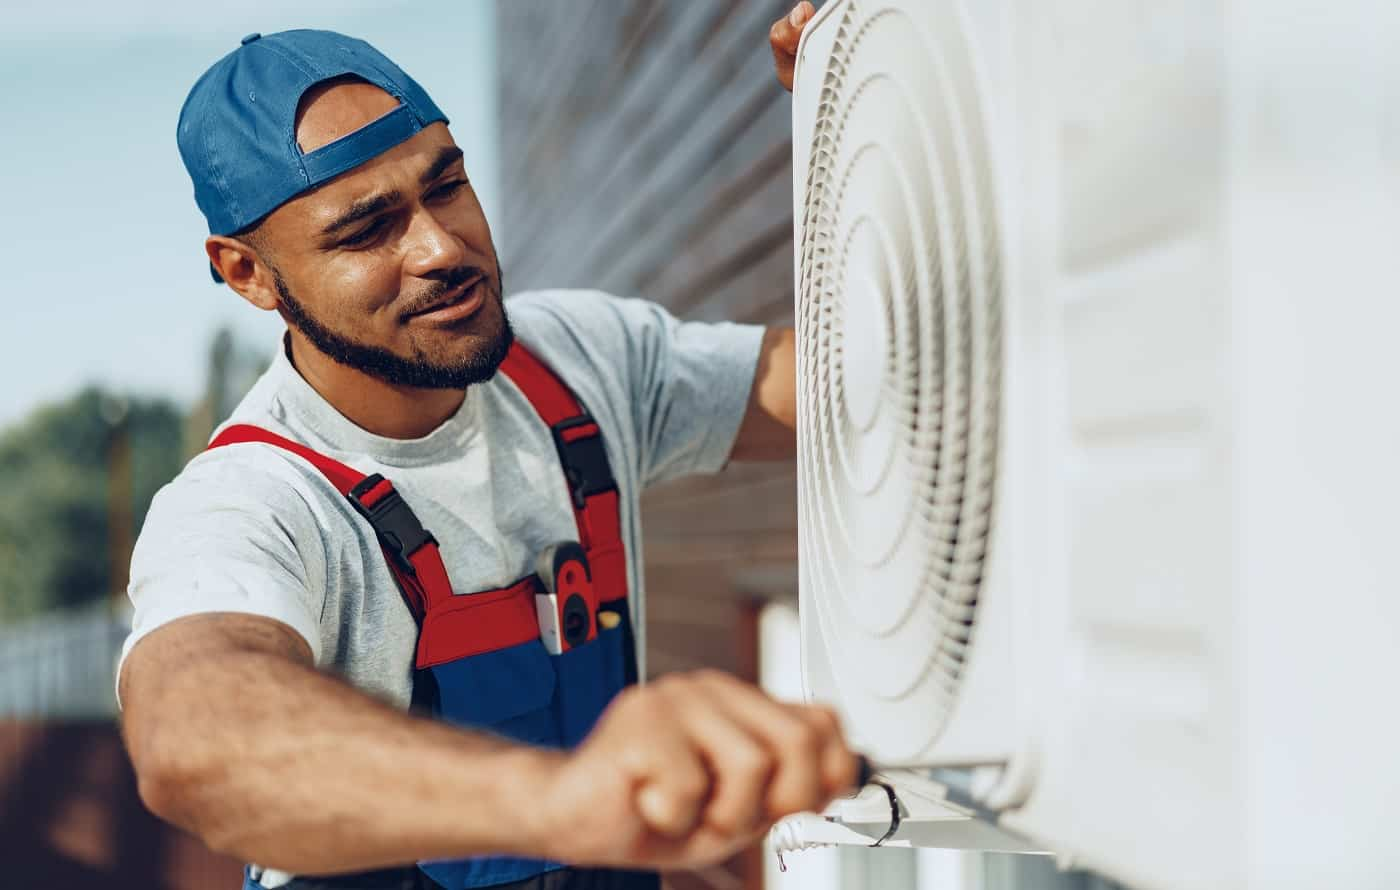 Young black man repairman checking an outside air conditioner unit close up